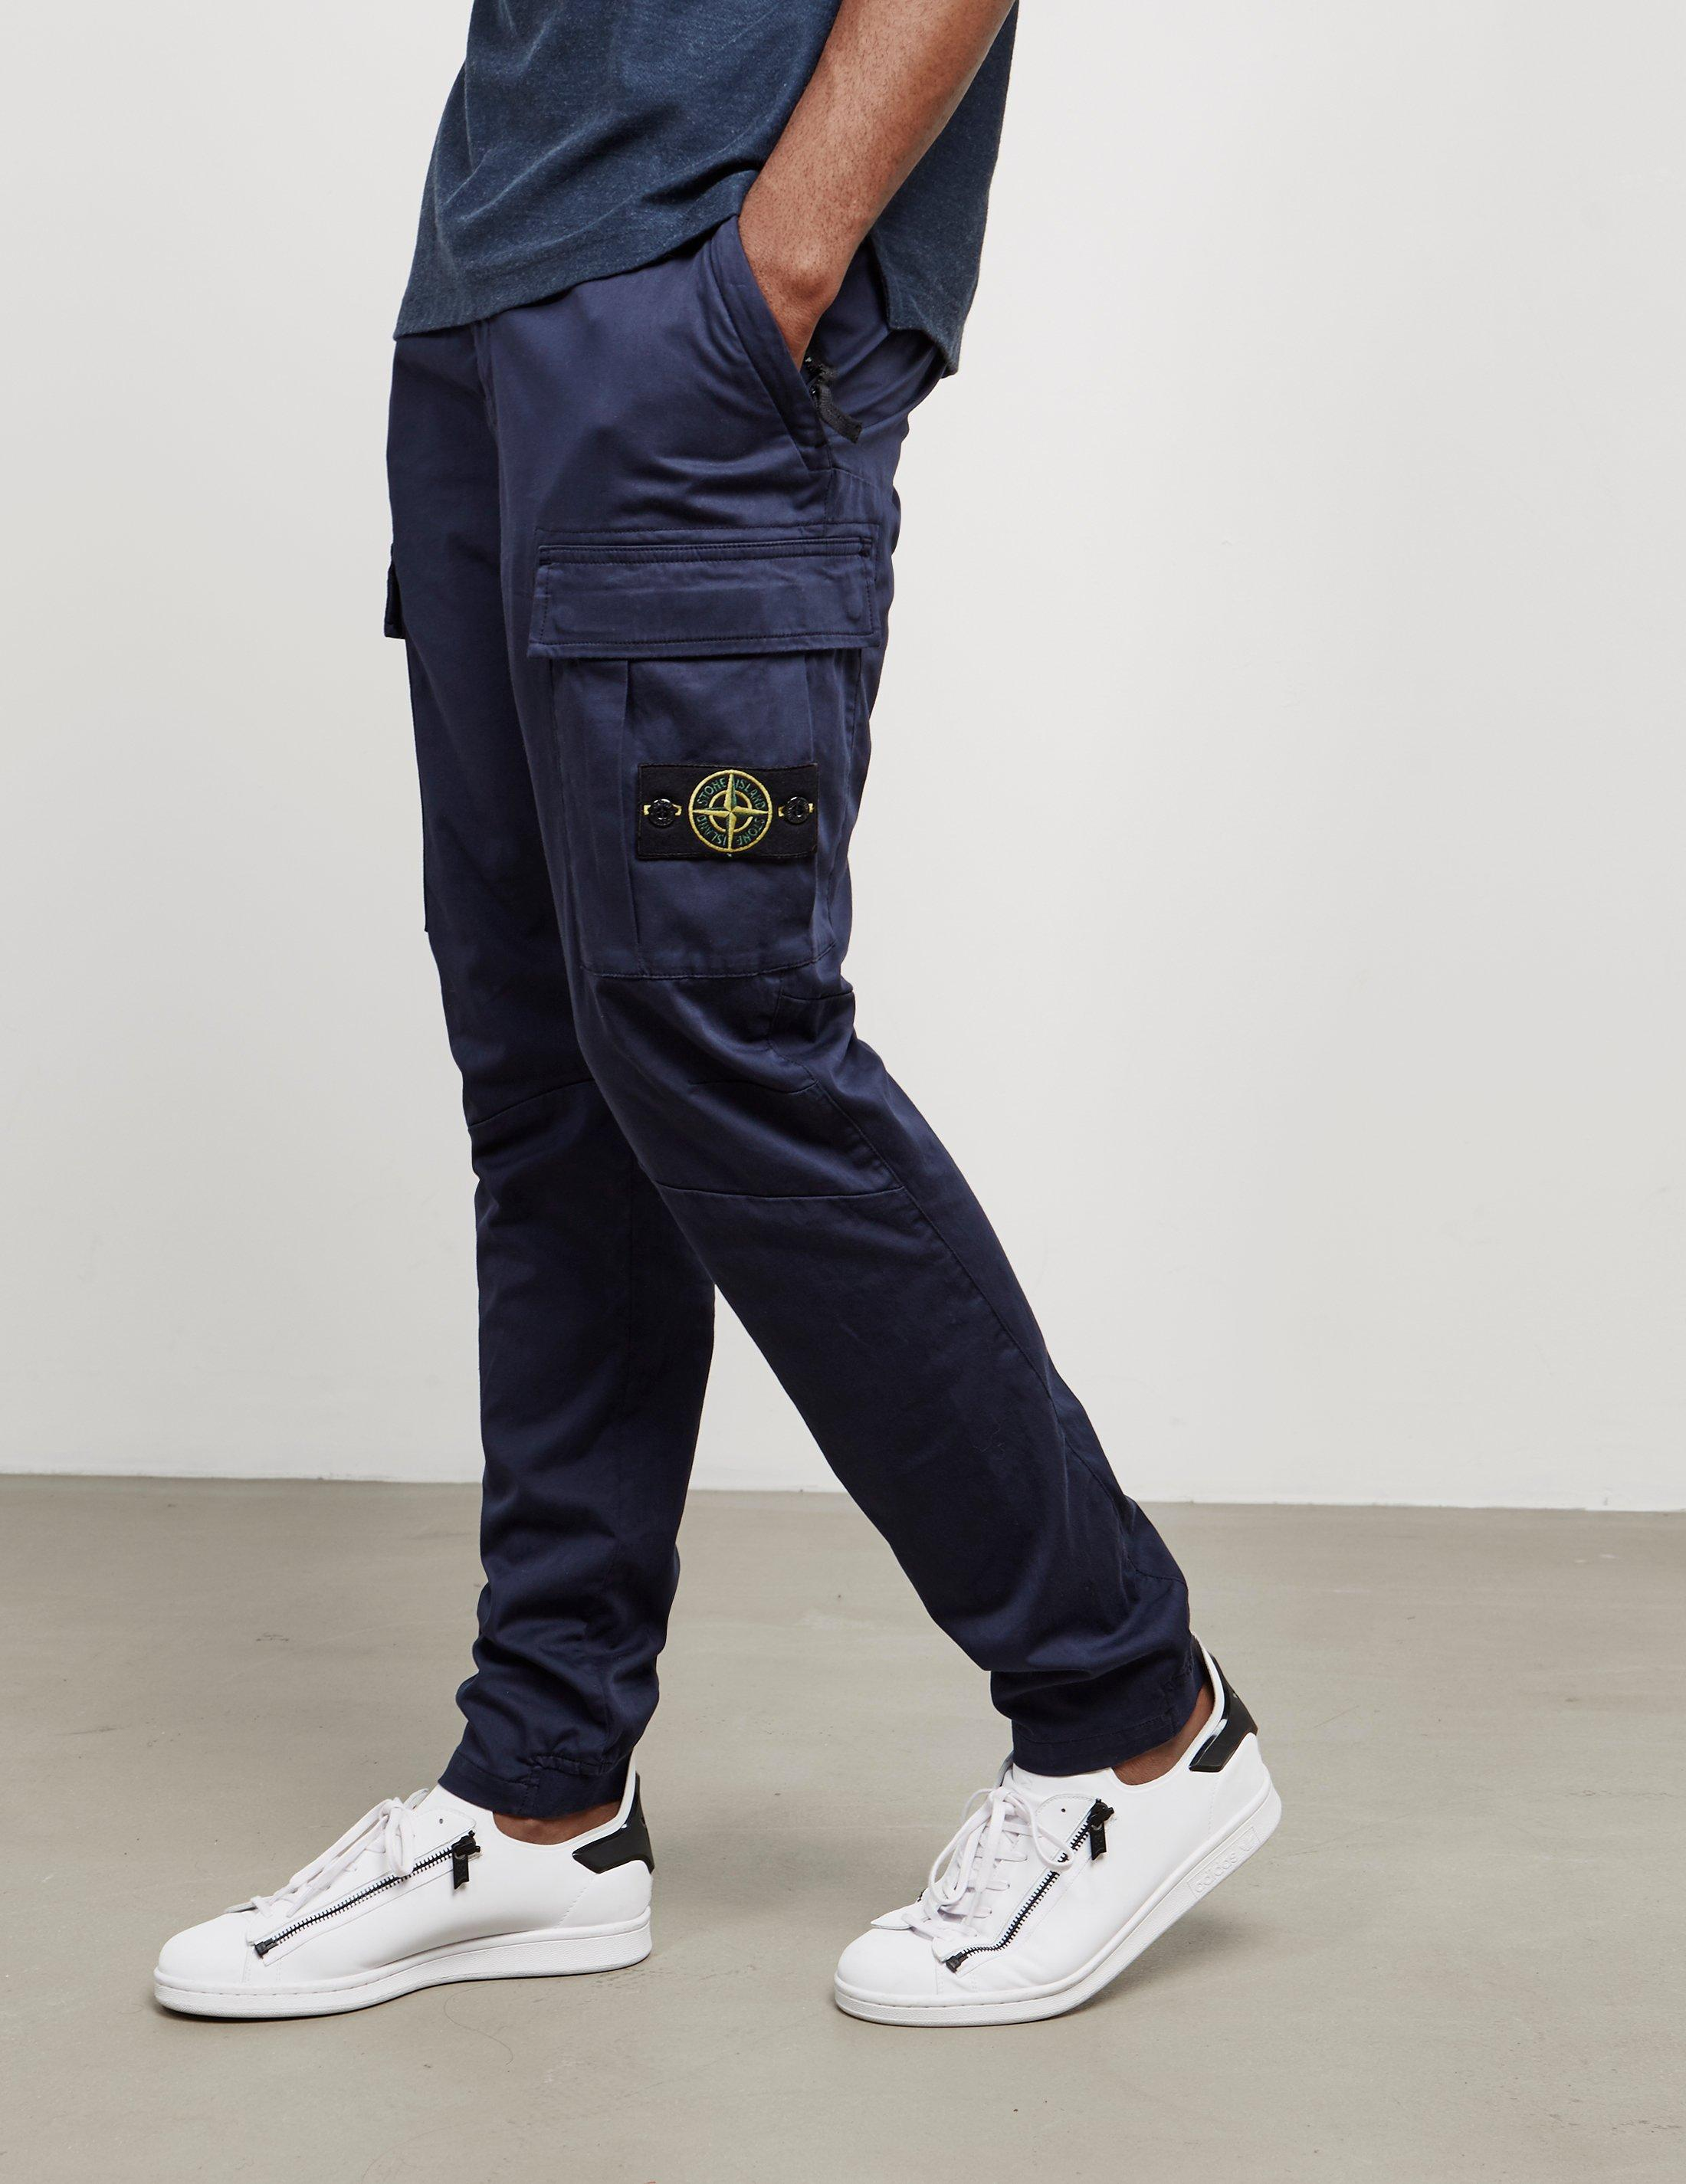 Stone Island Mens Garment Dyed Cargo Pants Navy Blue for ...